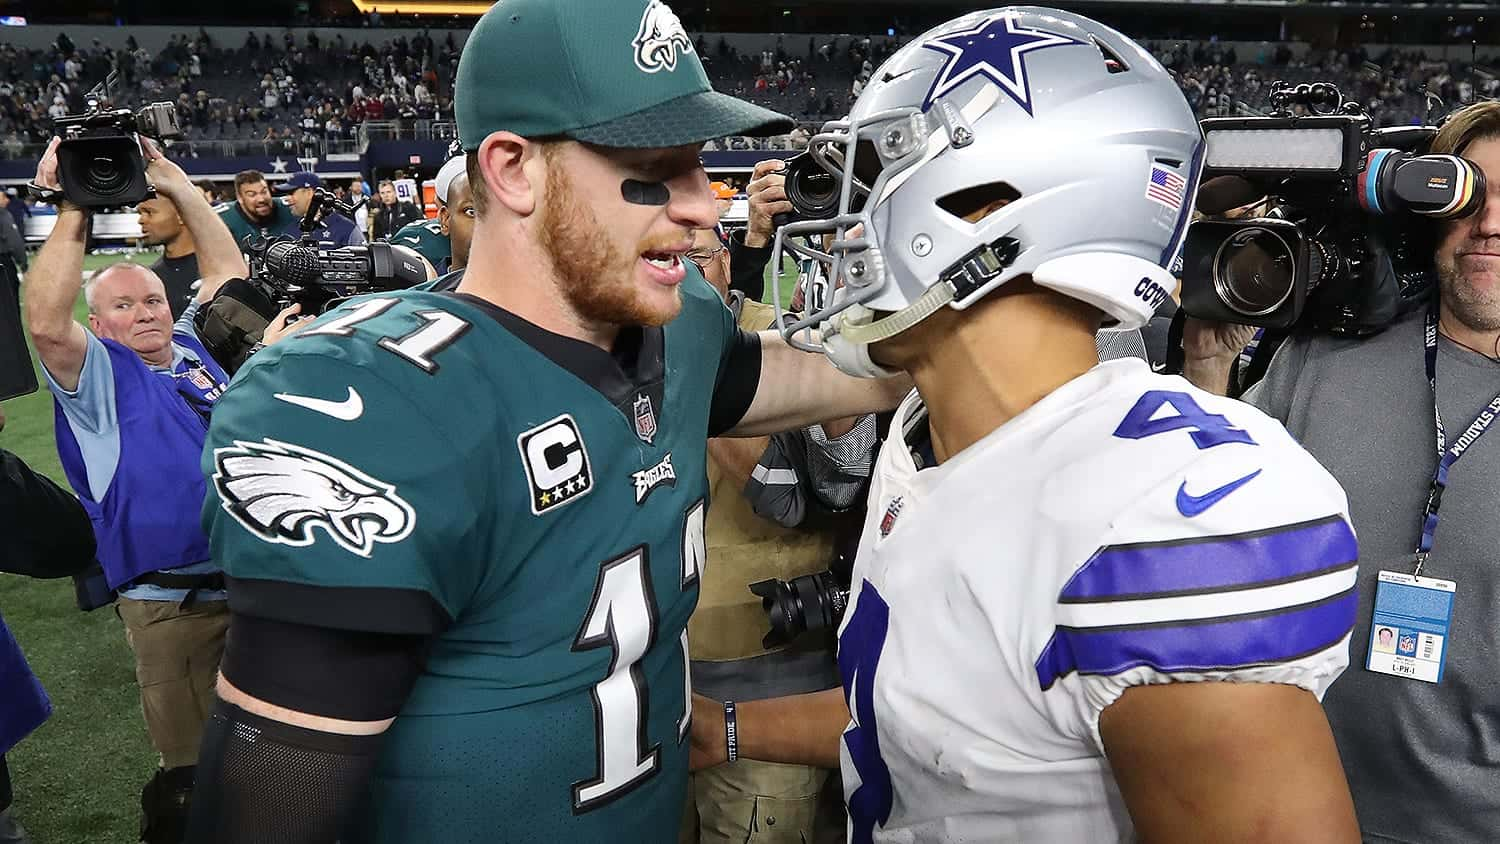 Top NFL divisional rivalry games that are must-see in 2020